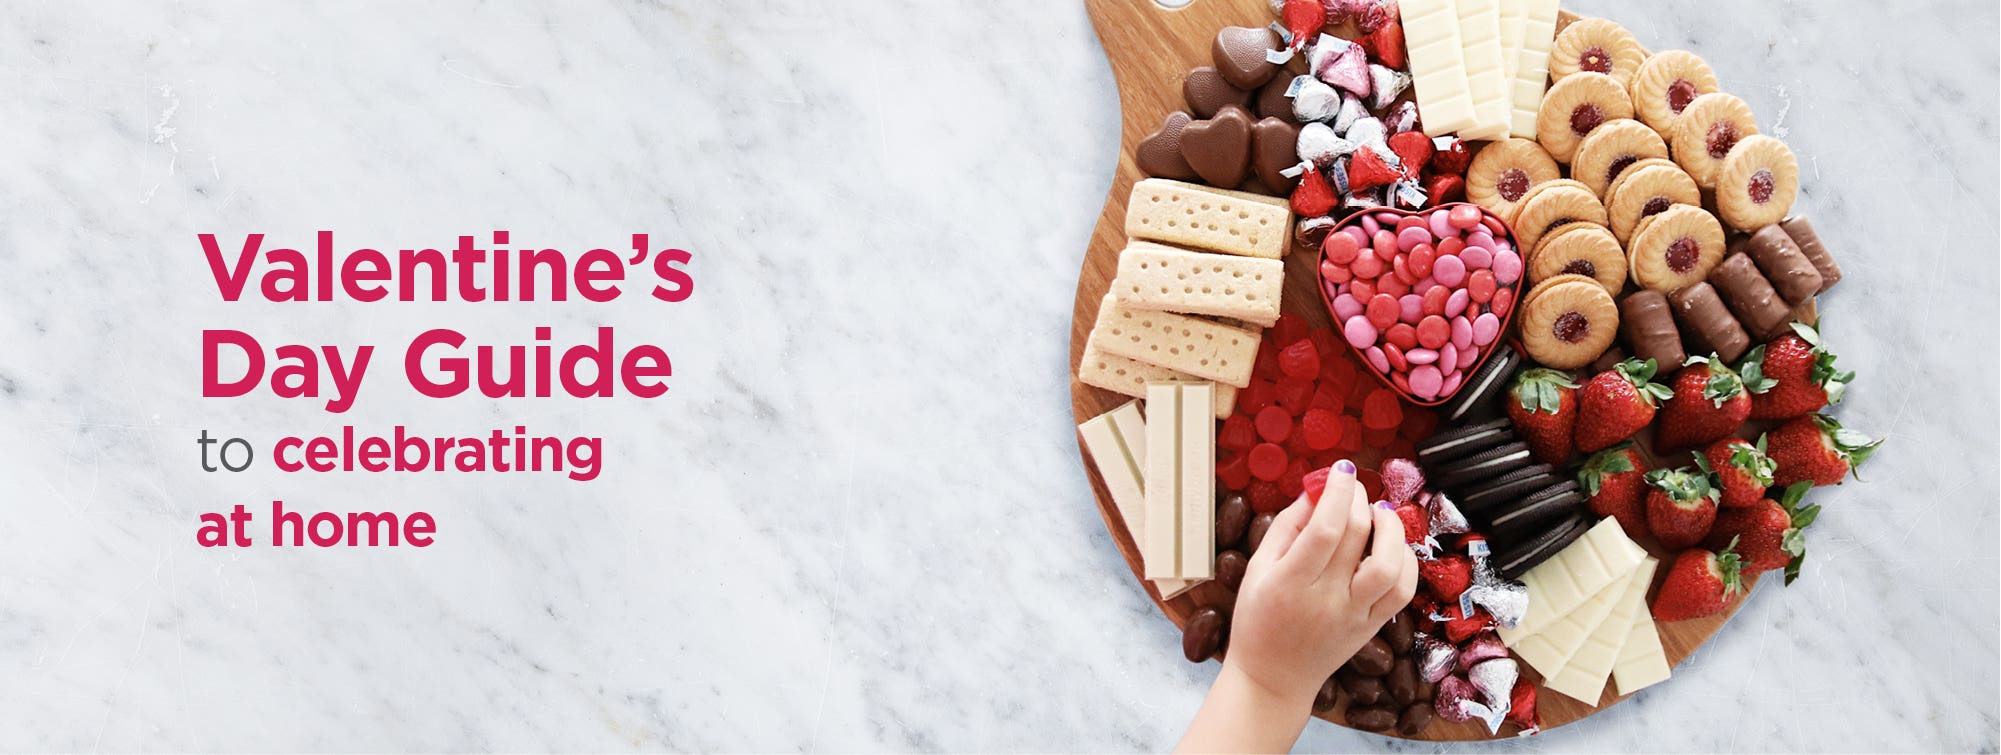 Valentine's Day Guide to celebrating at home